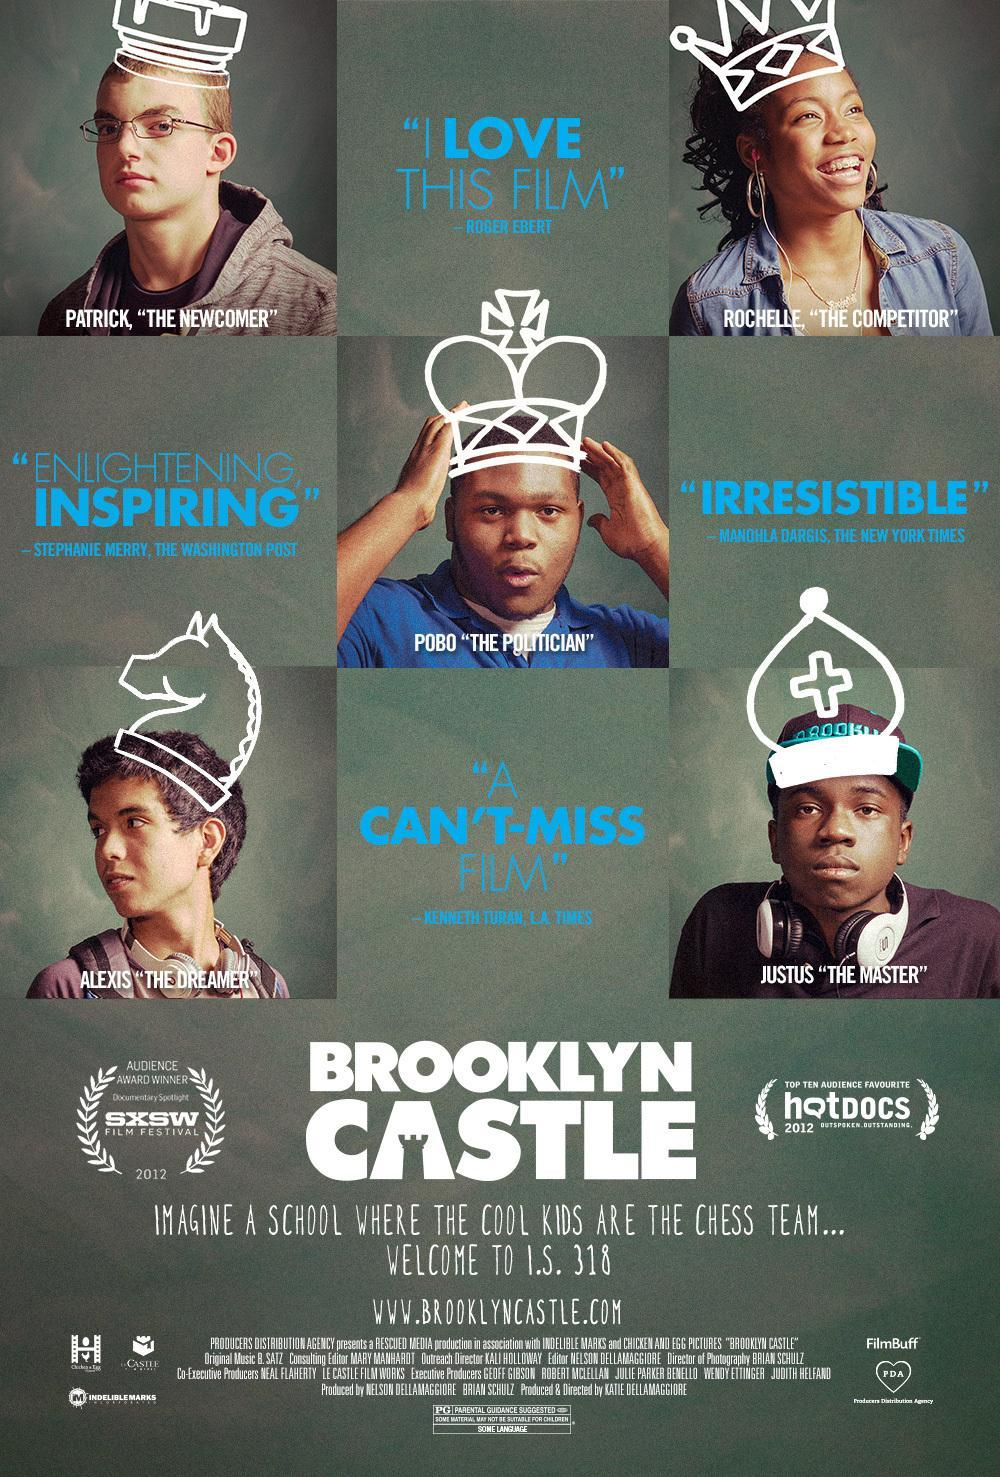 Brooklyn Castle to Air on PBS - Chess.com